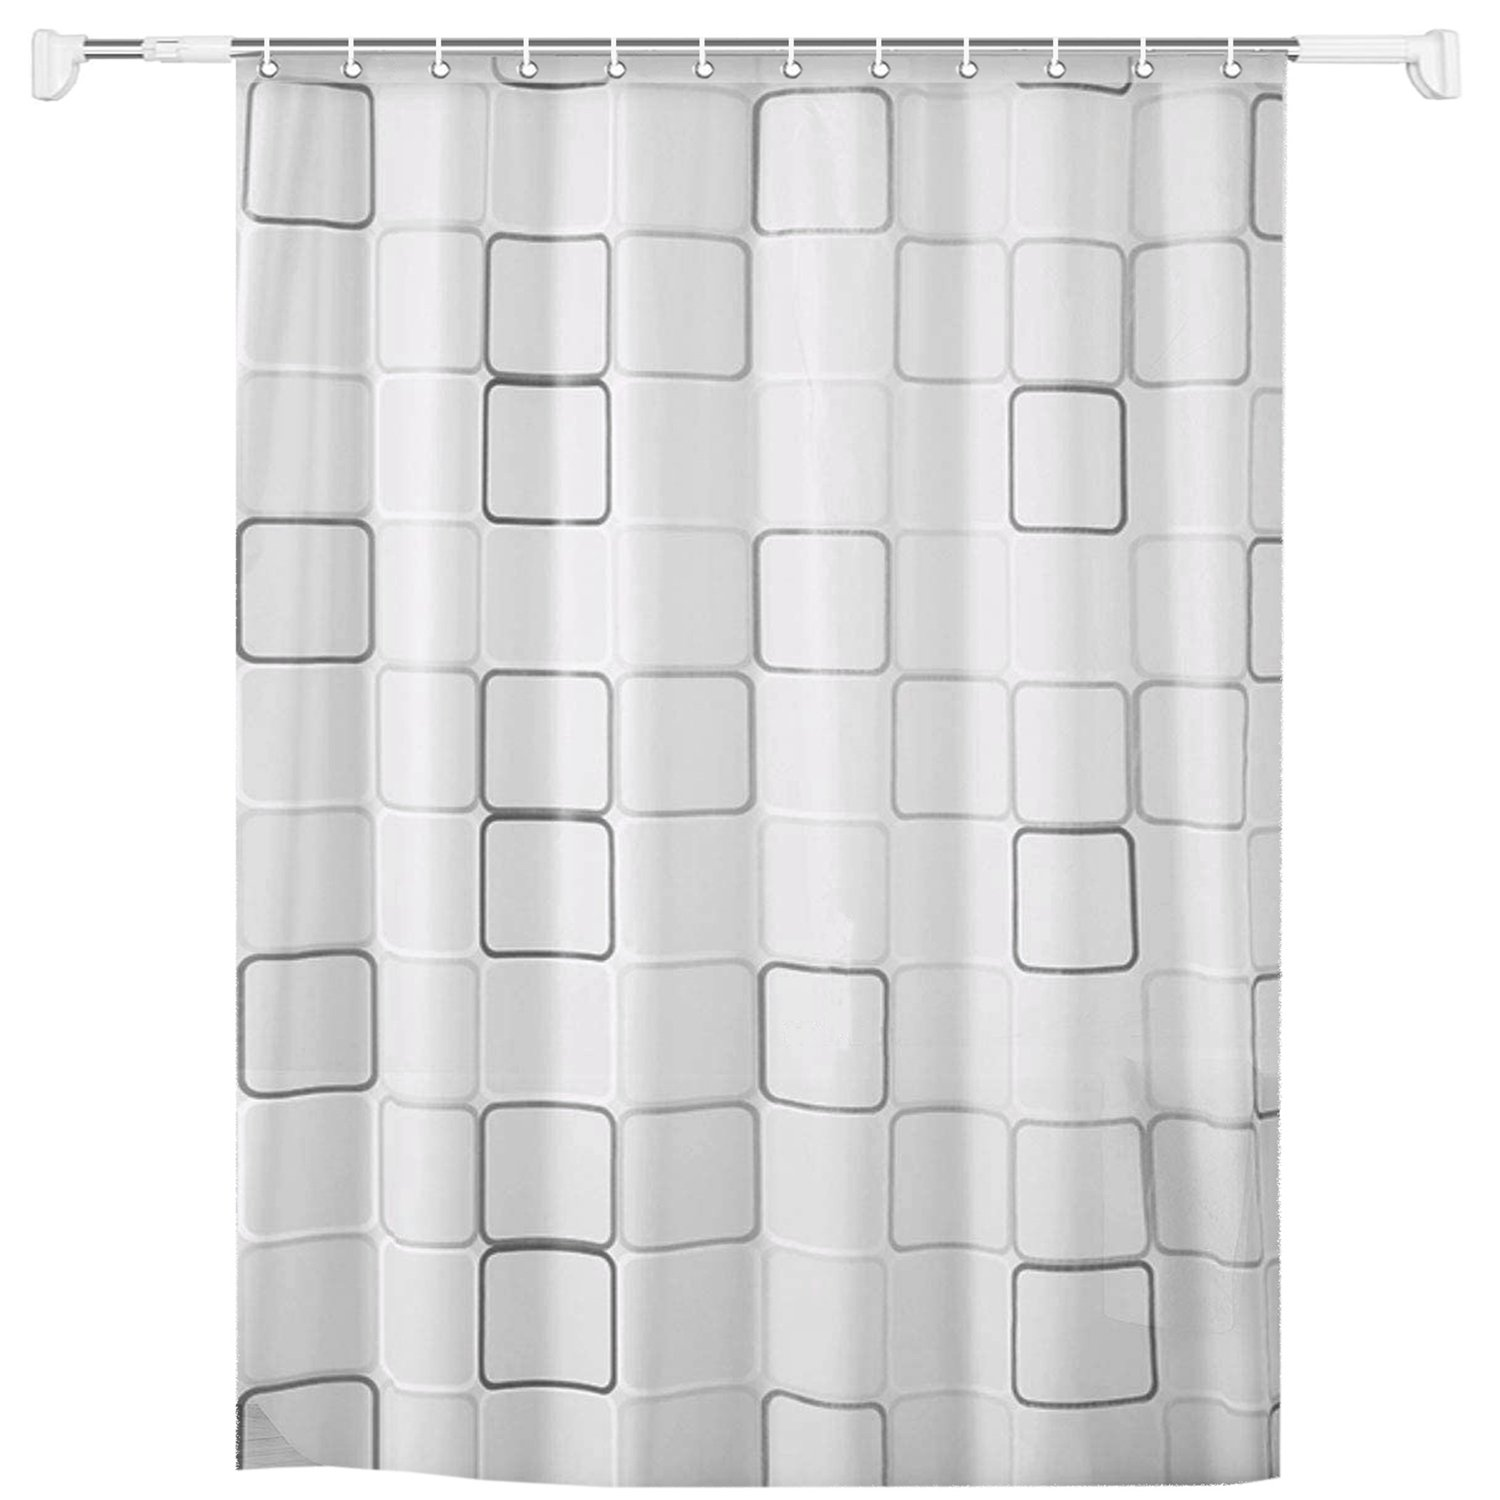 Stainless Steel Extendable Rob & Shower Curtain Set